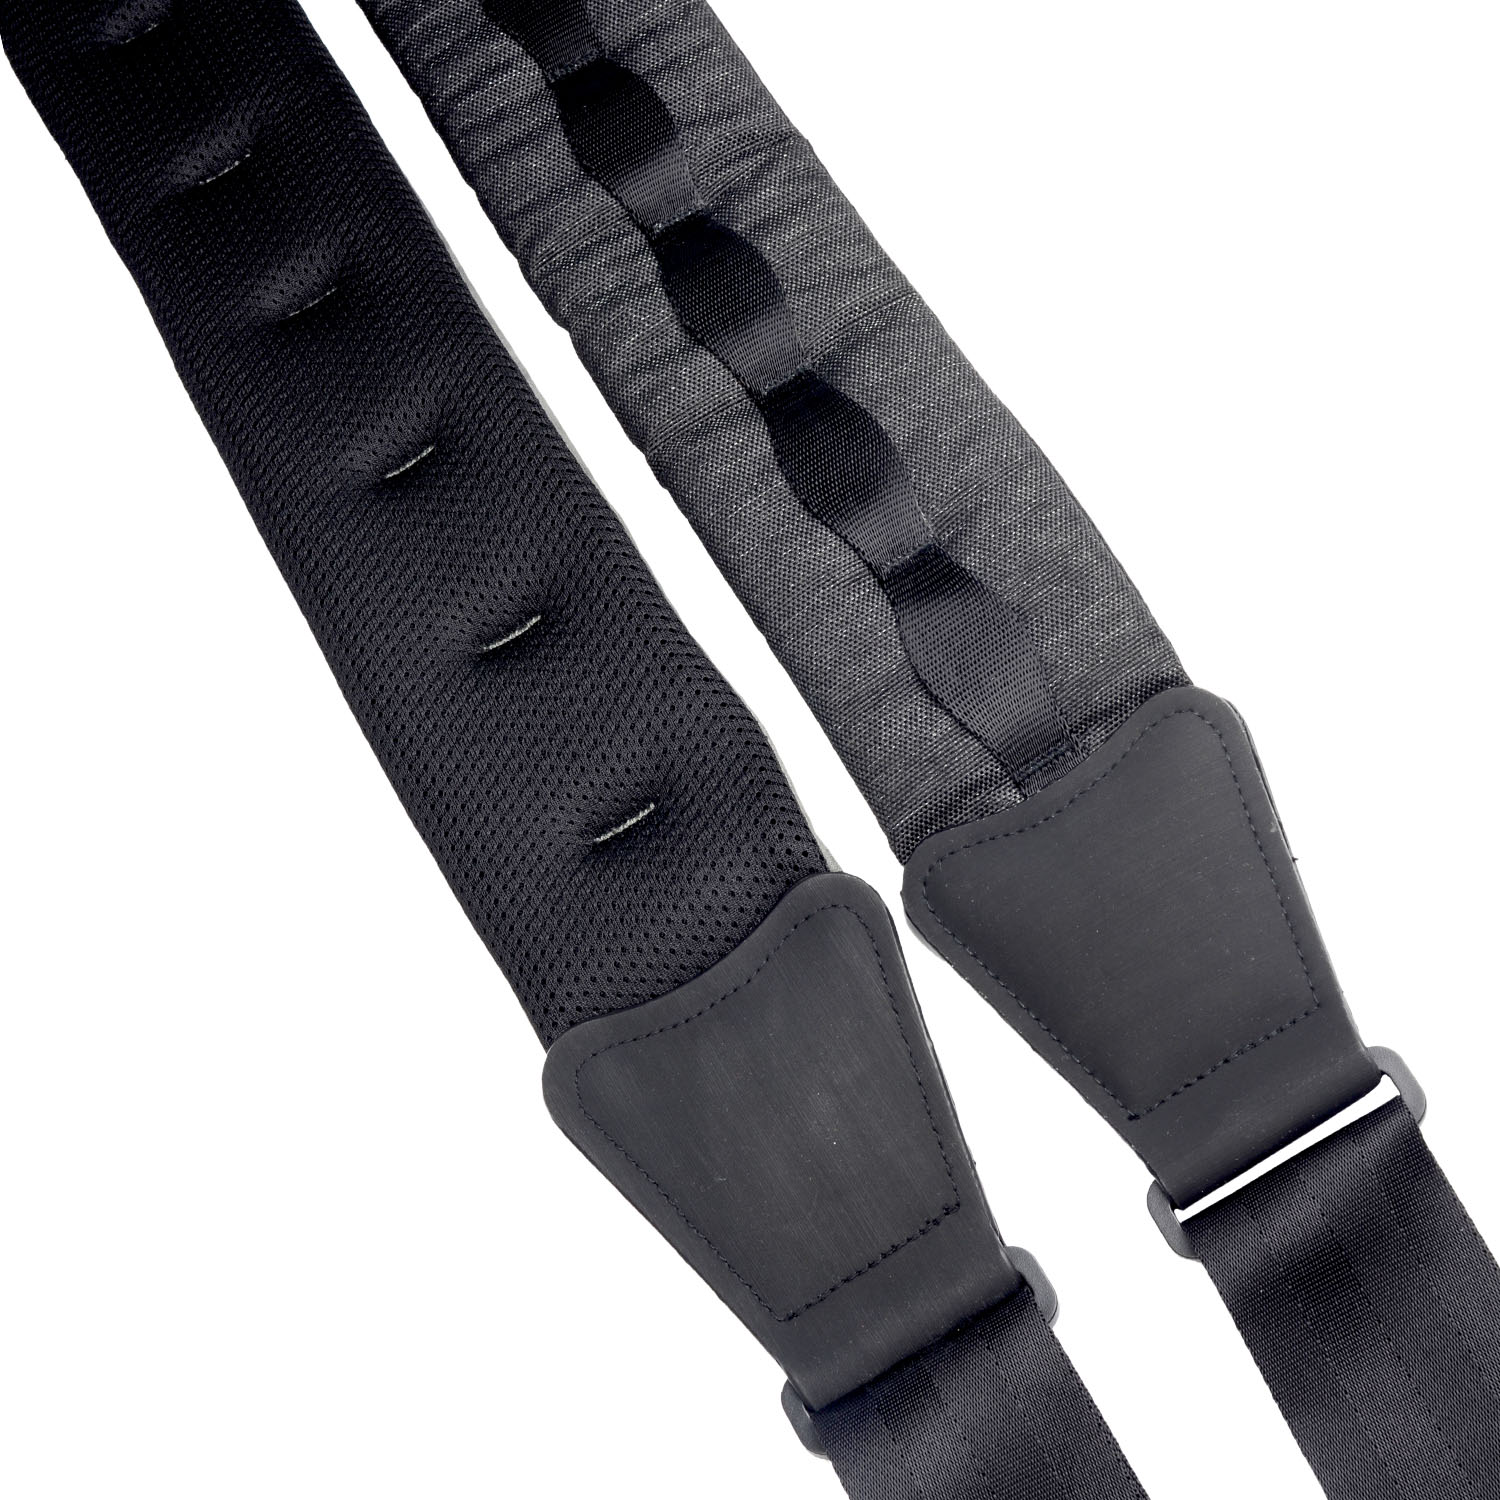 Amumu Nubuck Top-Grain Cattle Leather Guitar Strap Gray 3'' Wide and 45 - 55 adjustable length cropped wide sleeve top